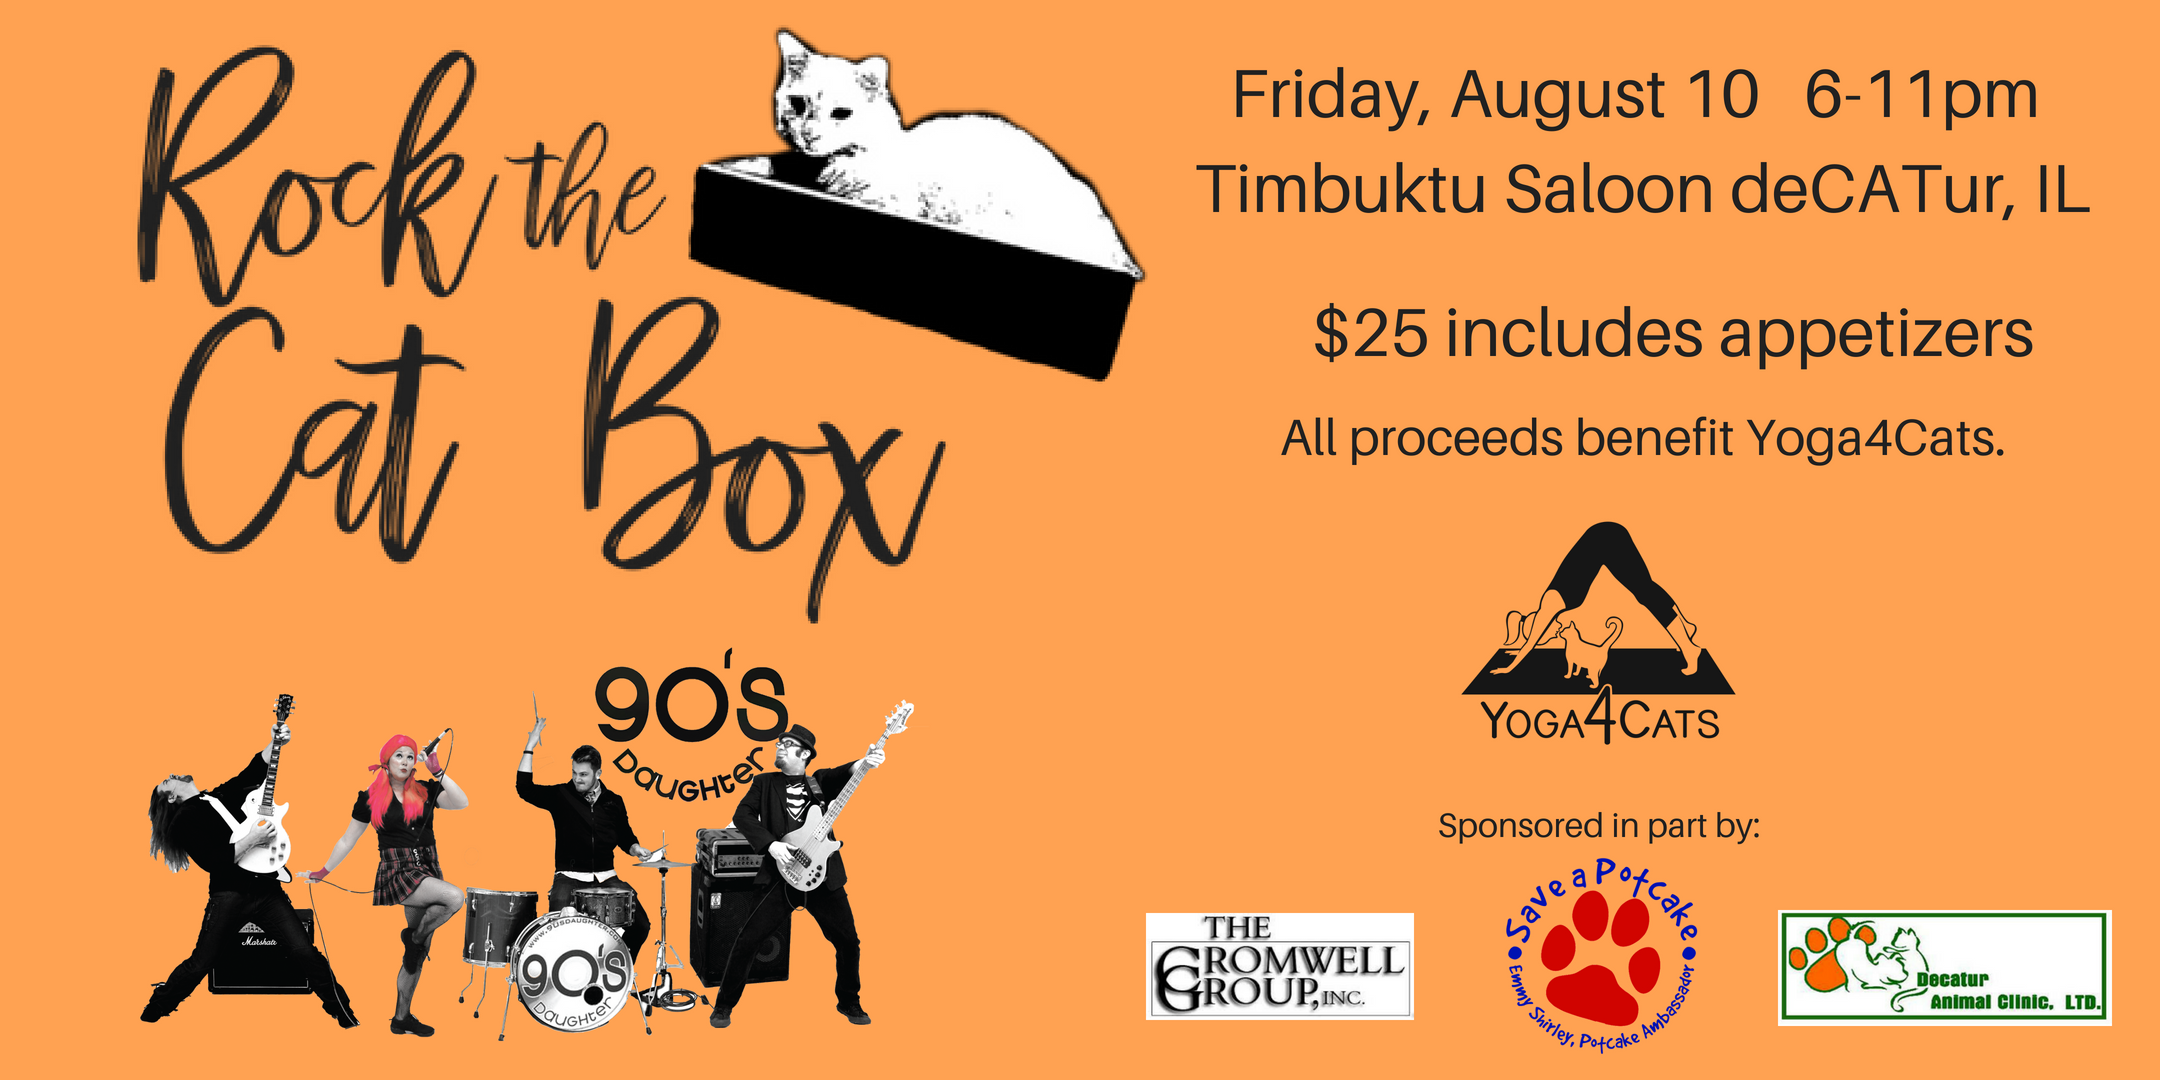 Tickets: $25 includes heavy appetizers - On sale now online  https://rockthecatbox.eventbrite.com  or at Timbuktu!  RSVP on Facebook